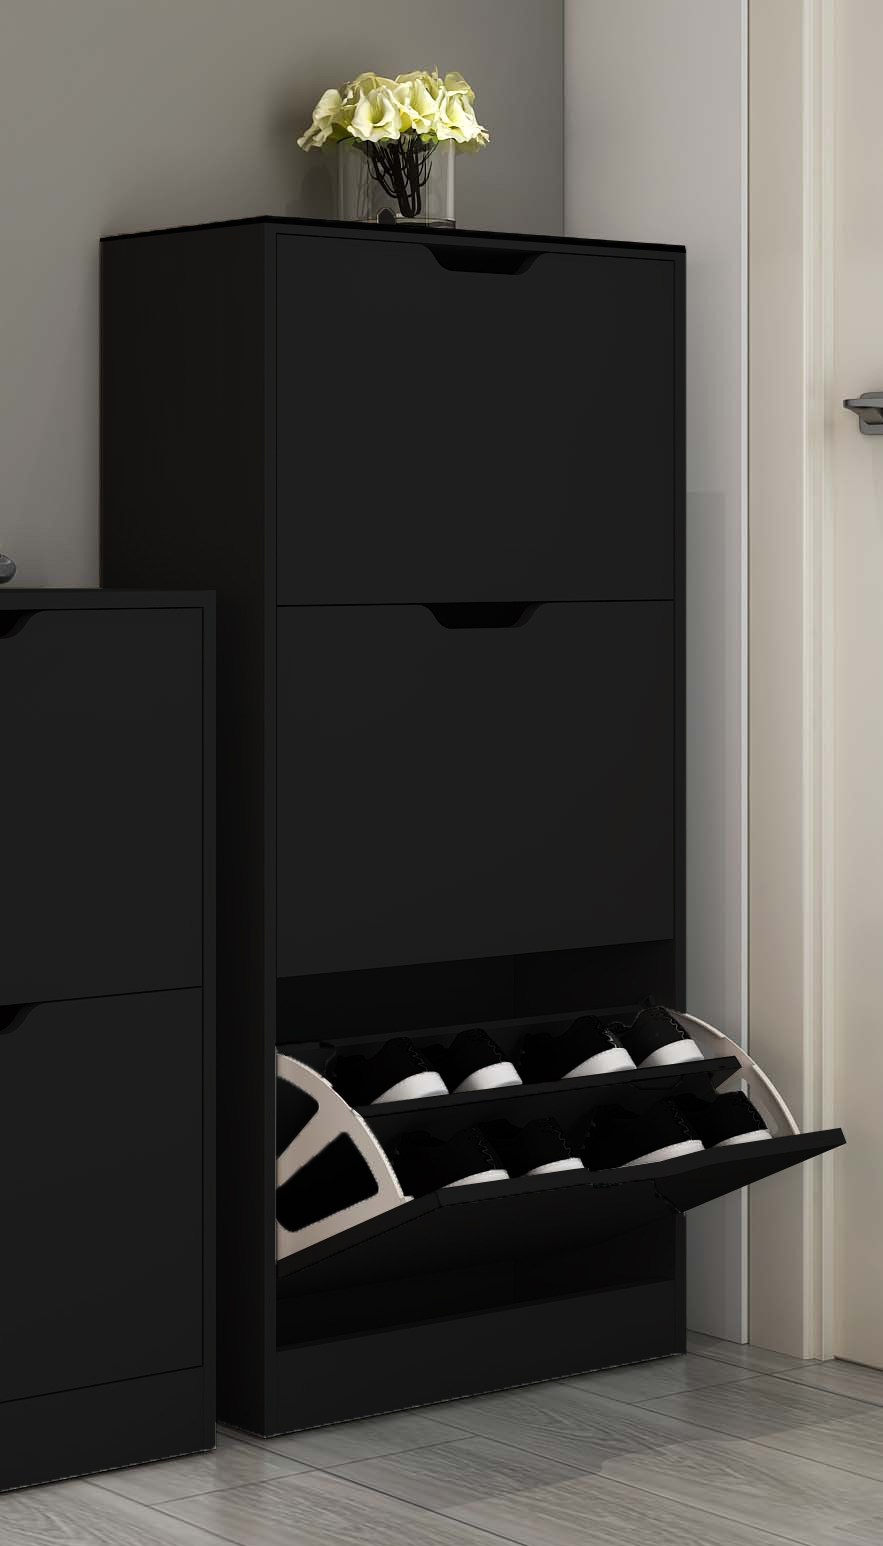 schuhschrank schuhkipper 3 kipper schuhregal schuhablage. Black Bedroom Furniture Sets. Home Design Ideas